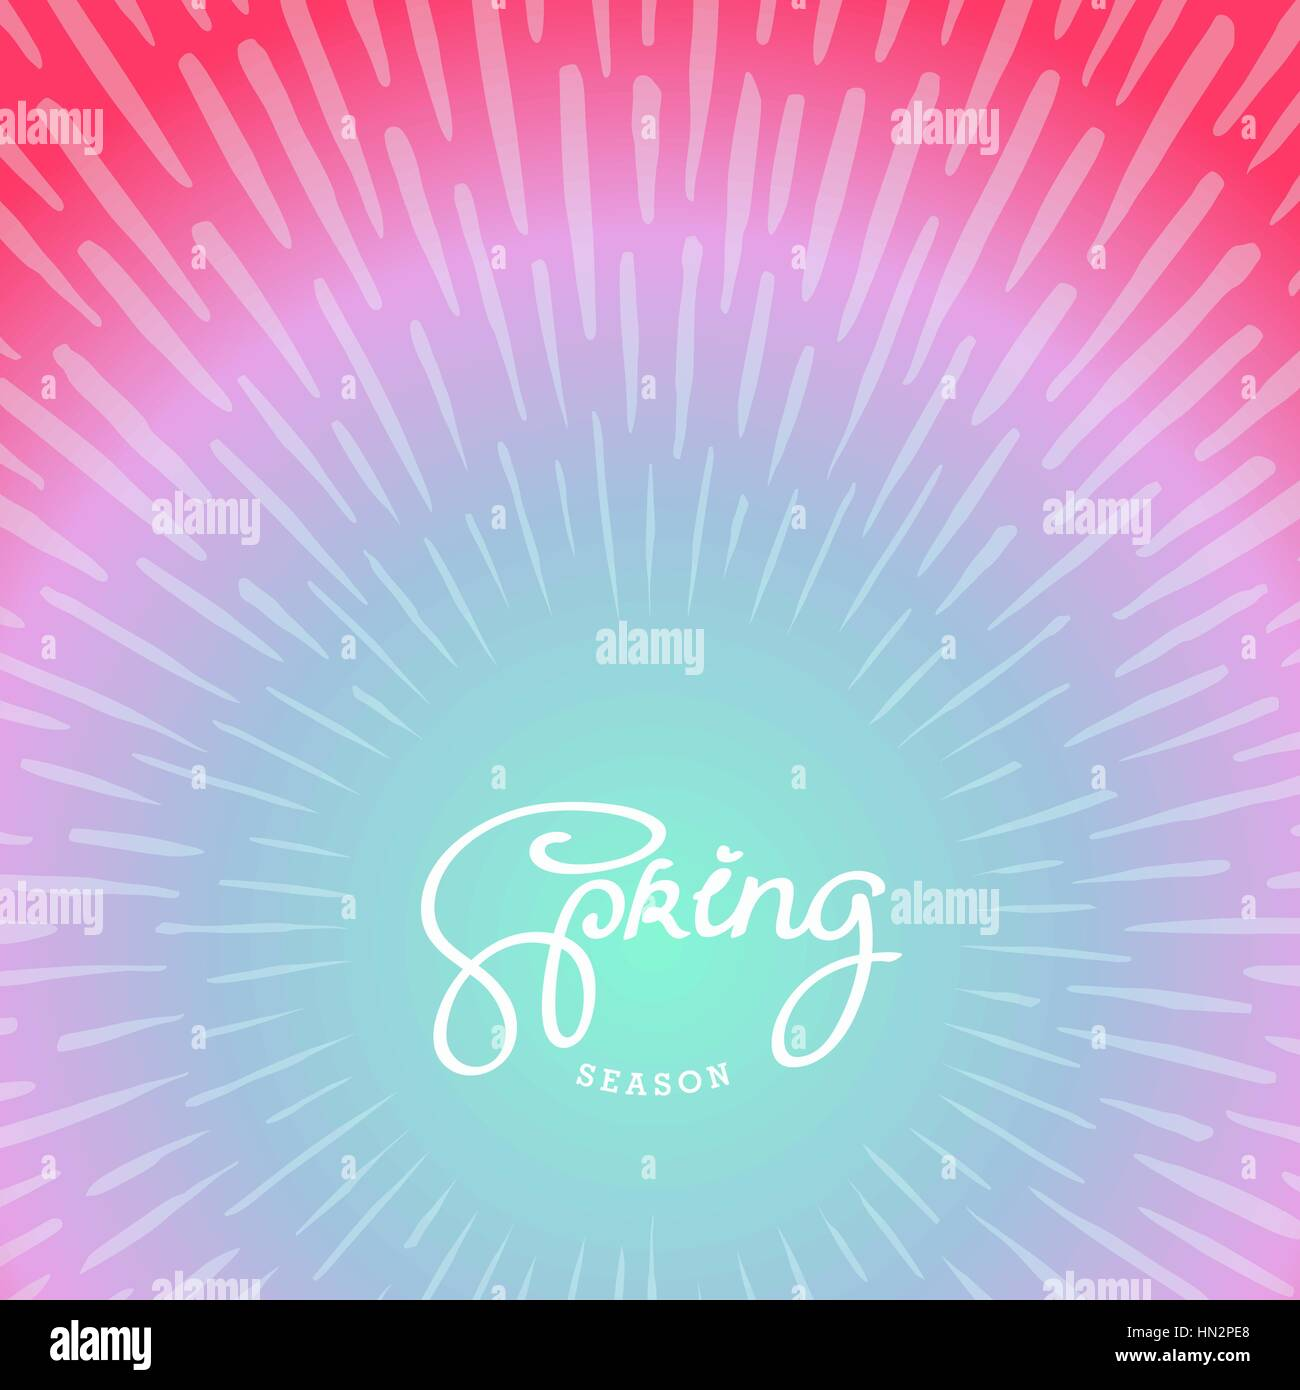 Spring season. Abstract artwork background with doodle sunburst ...